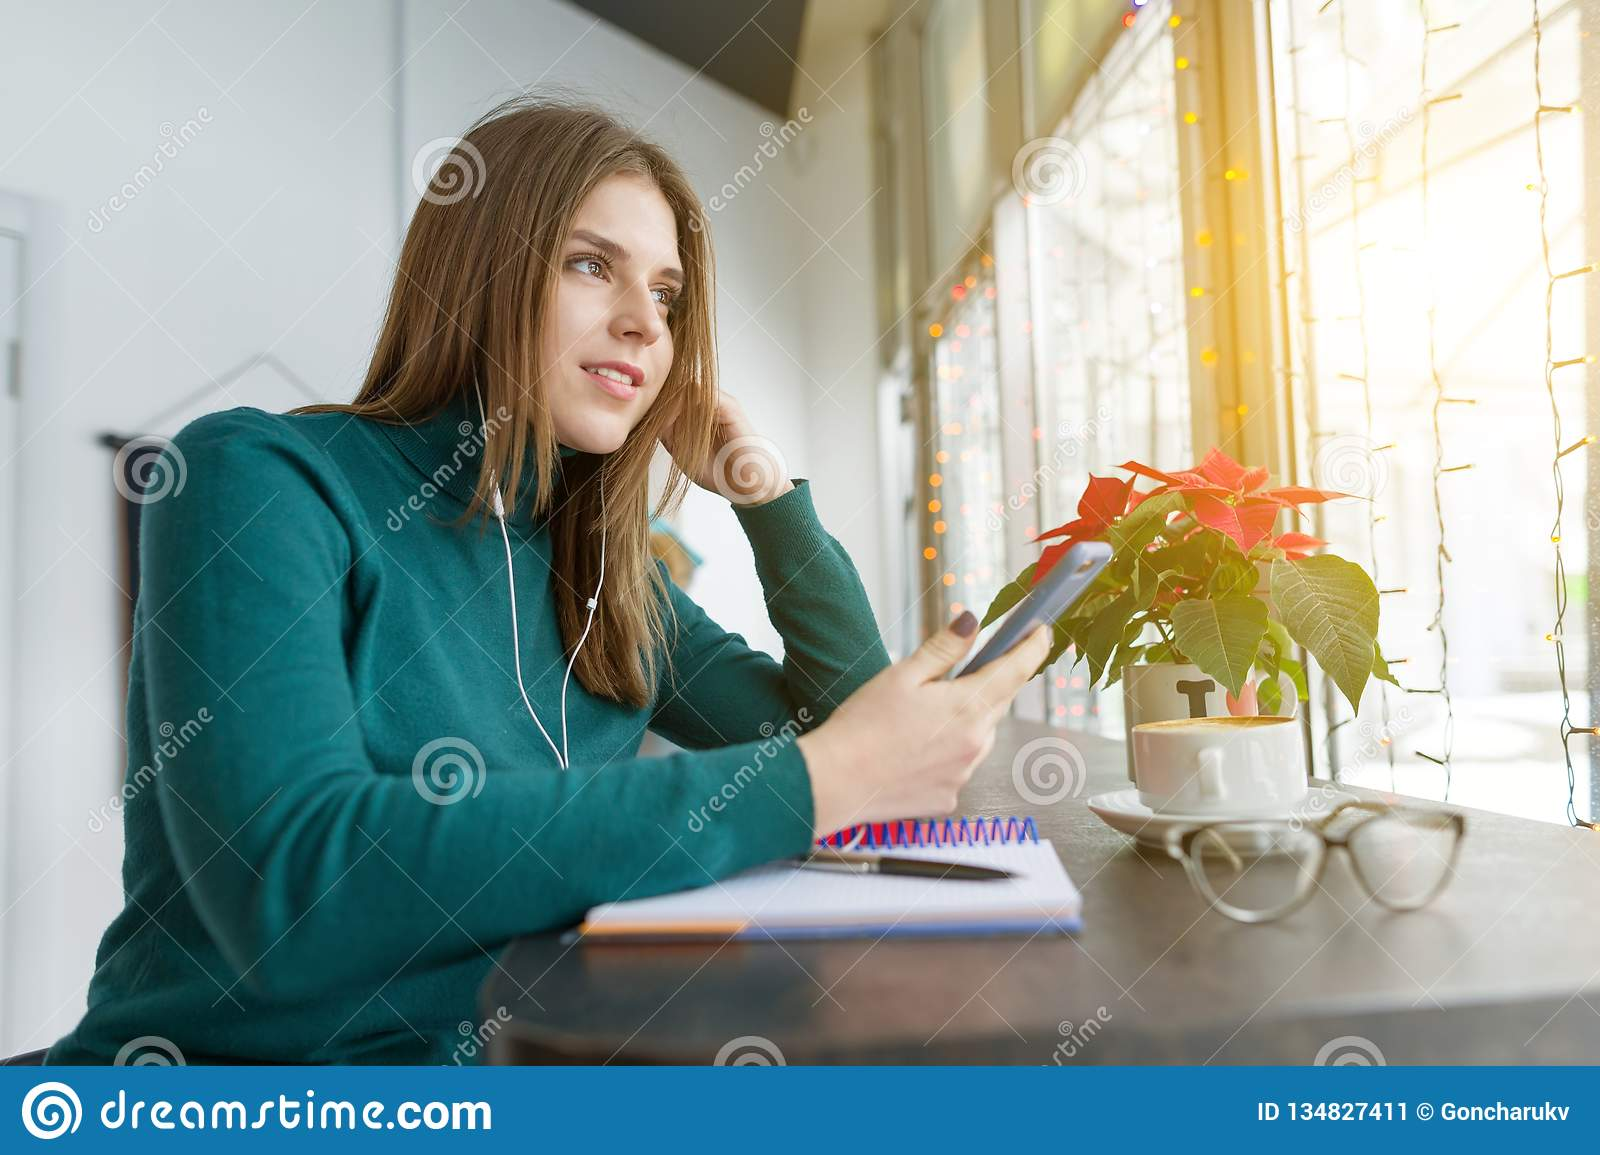 Winter portrait of student girl studying in cafe sitting with cup of coffee. Young woman studying using smartphone, listening to